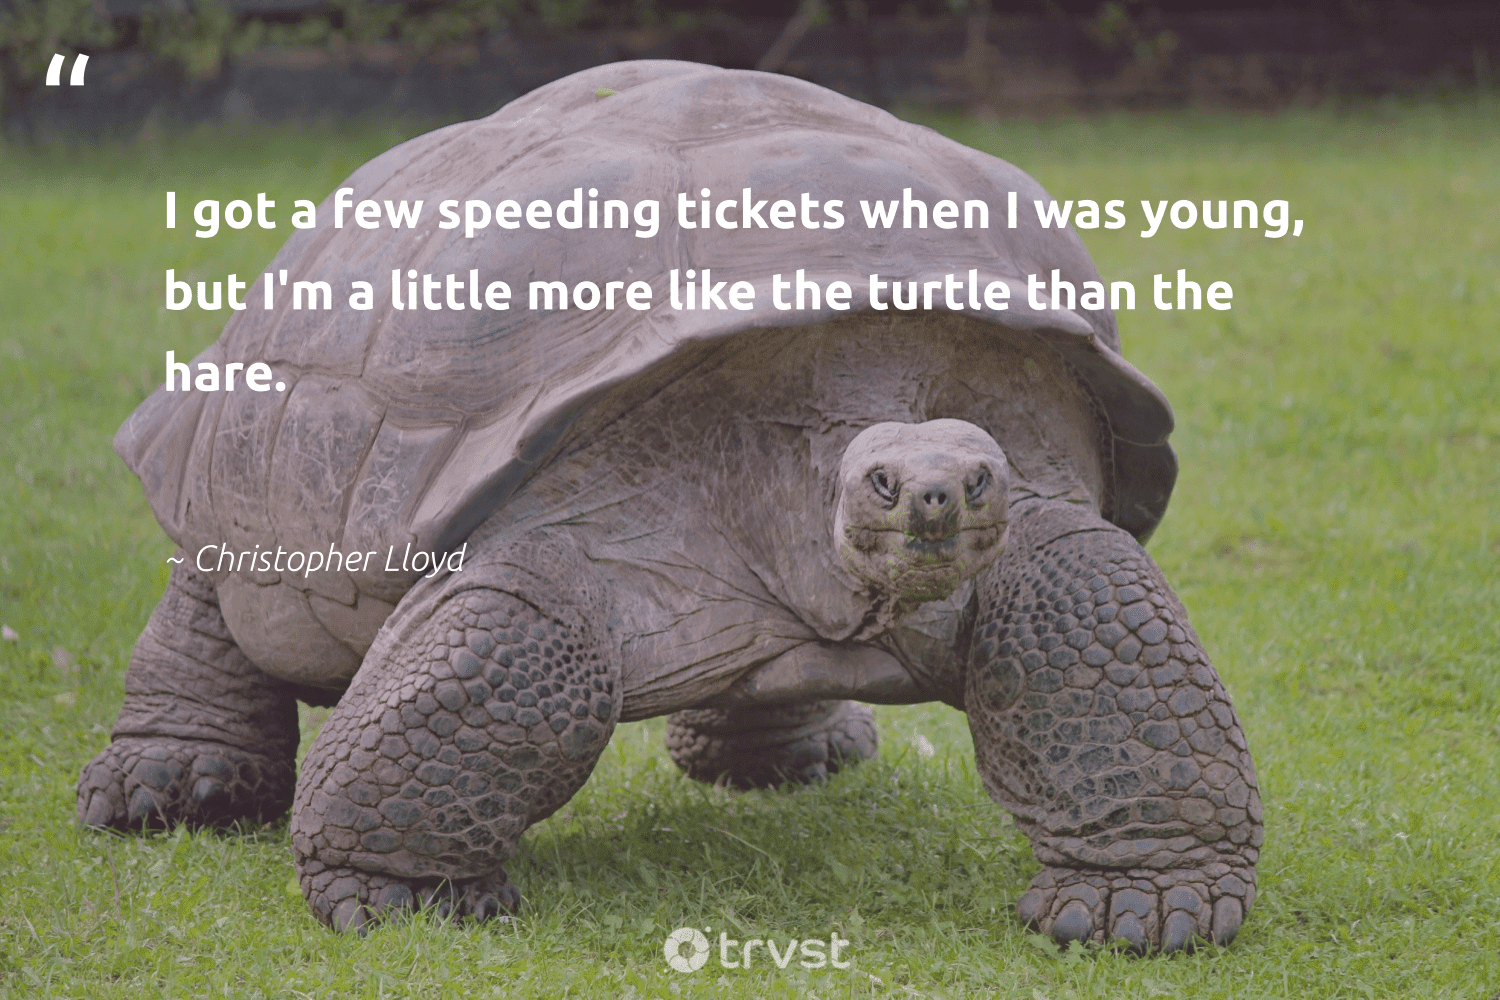 """""""I got a few speeding tickets when I was young, but I'm a little more like the turtle than the hare.""""  - Christopher Lloyd #trvst #quotes #turtle #perfectnature #impact #sustainability #gogreen #protectnature #changetheworld #aquaticlife #planetearthfirst #oceans"""